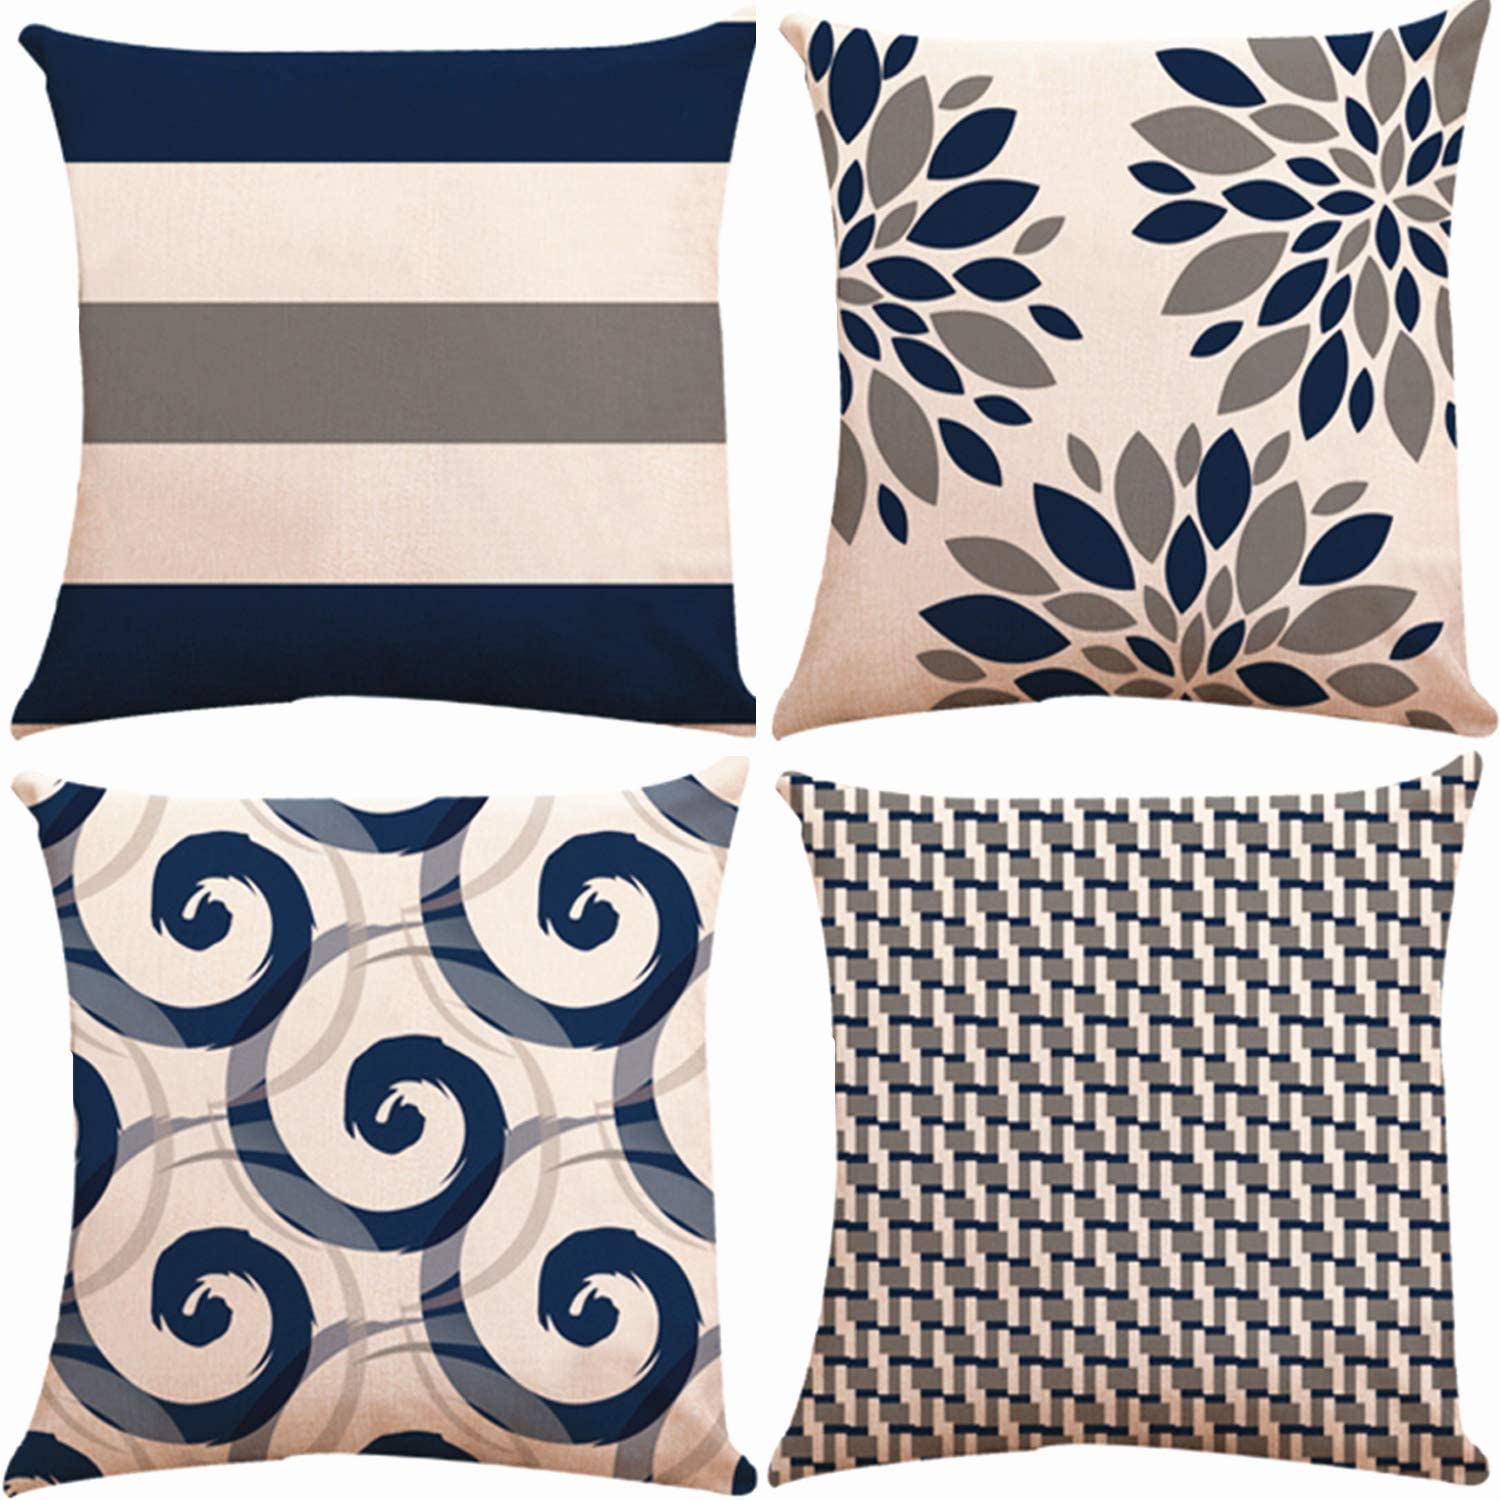 ZUEXT Geometric Throw Pillow Covers 16x16 Inch Double Sided, Set of 4 Cotton Linen Indoor Outdoor Modern Floral Accent Pillow Cushion Cover for Car Sofa Home Decor (Navy Beige Check, Mix & Match)